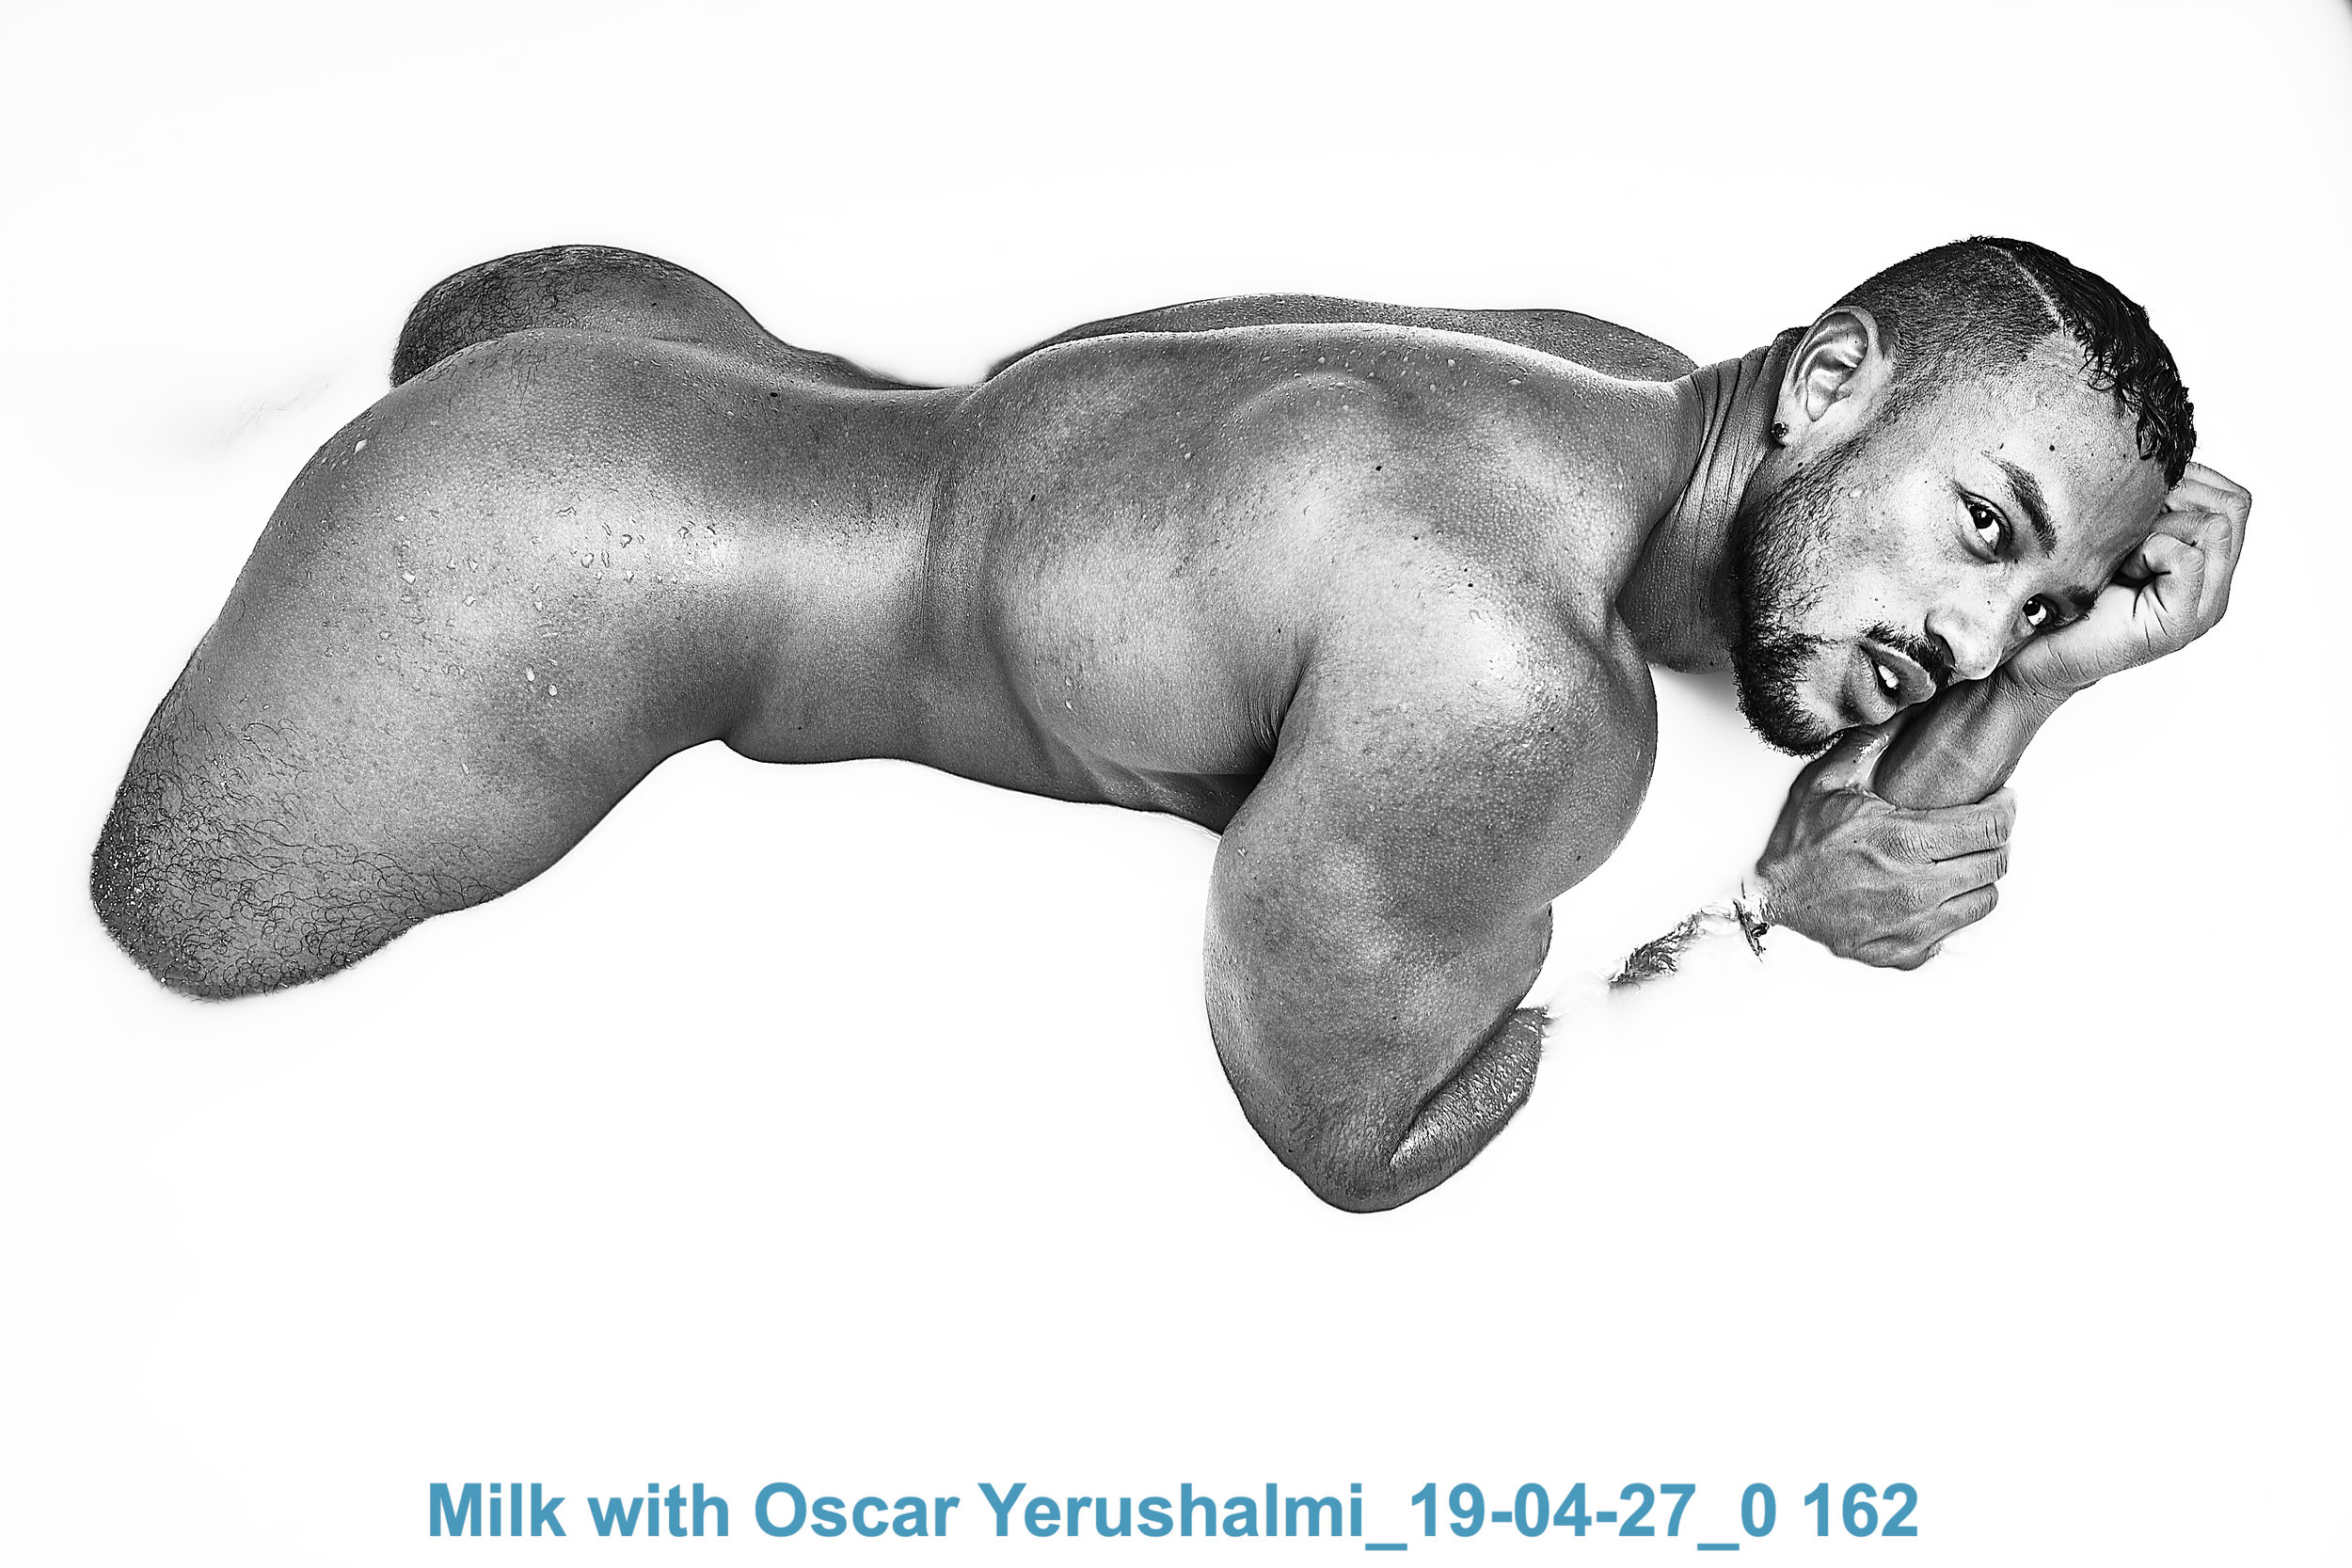 Milk with Oscar Yerushalmi_19-04-27_0 162.jpg